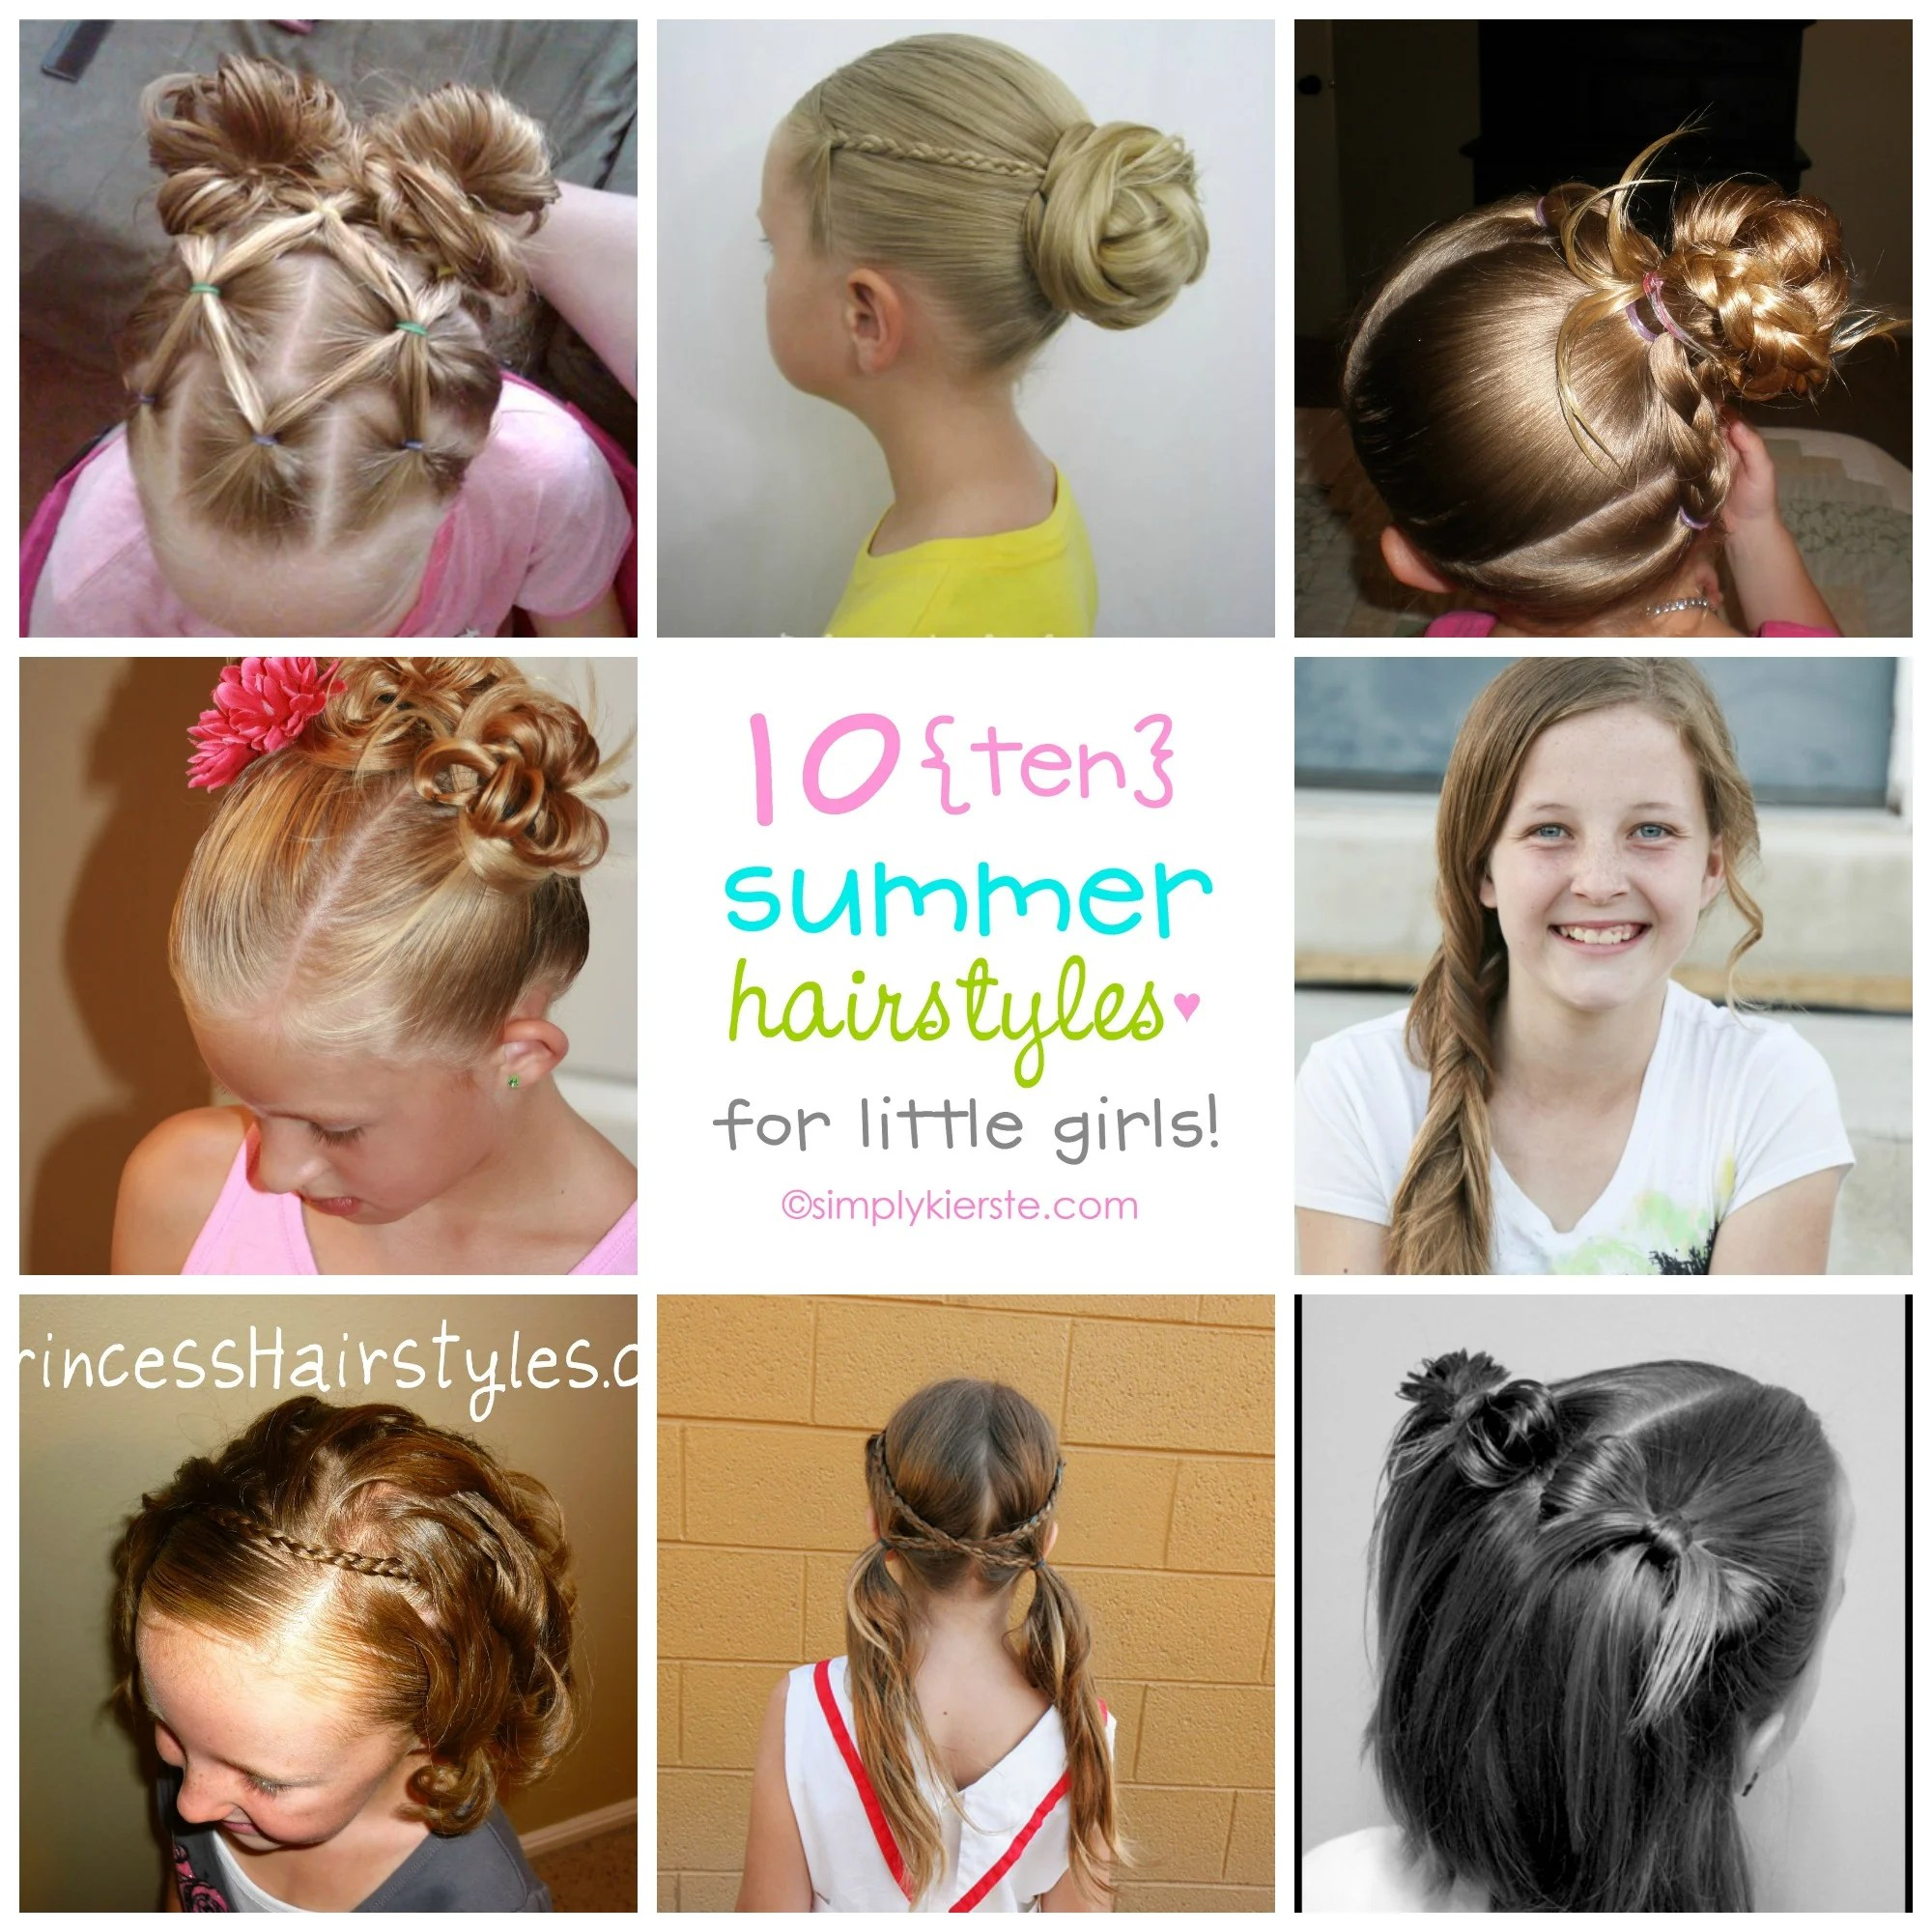 10 Fun Summer Hairstyles for Little Girls